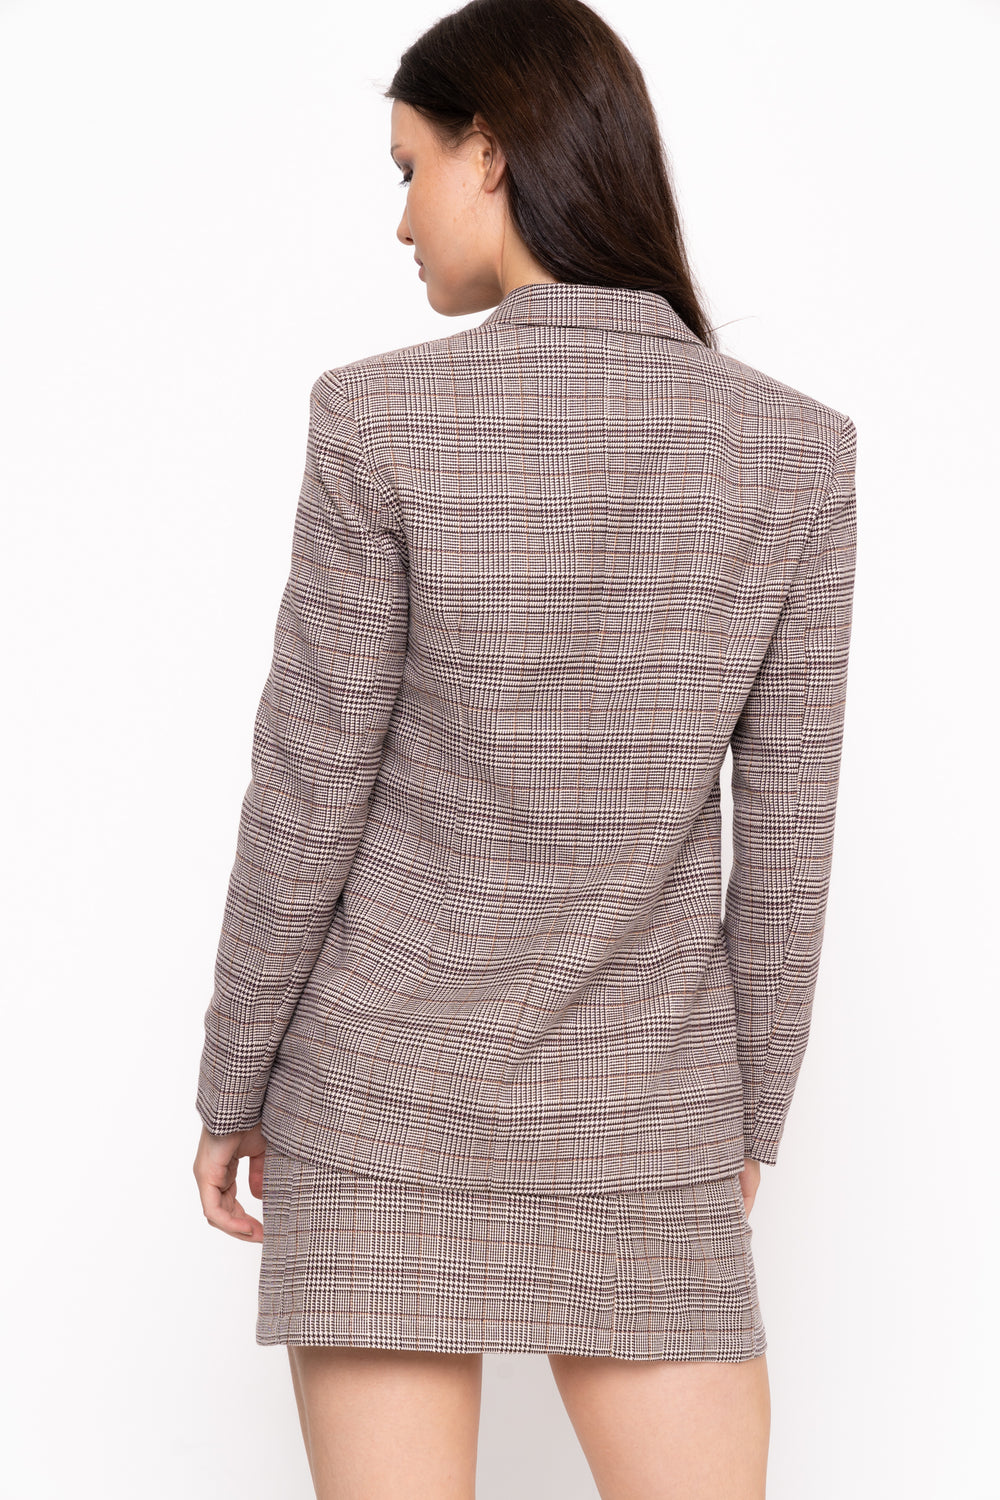 Unique 21 Brown Check Double Breasted Blazer Modest Loose Fitting Women Checkered Jacket with Front Buttons